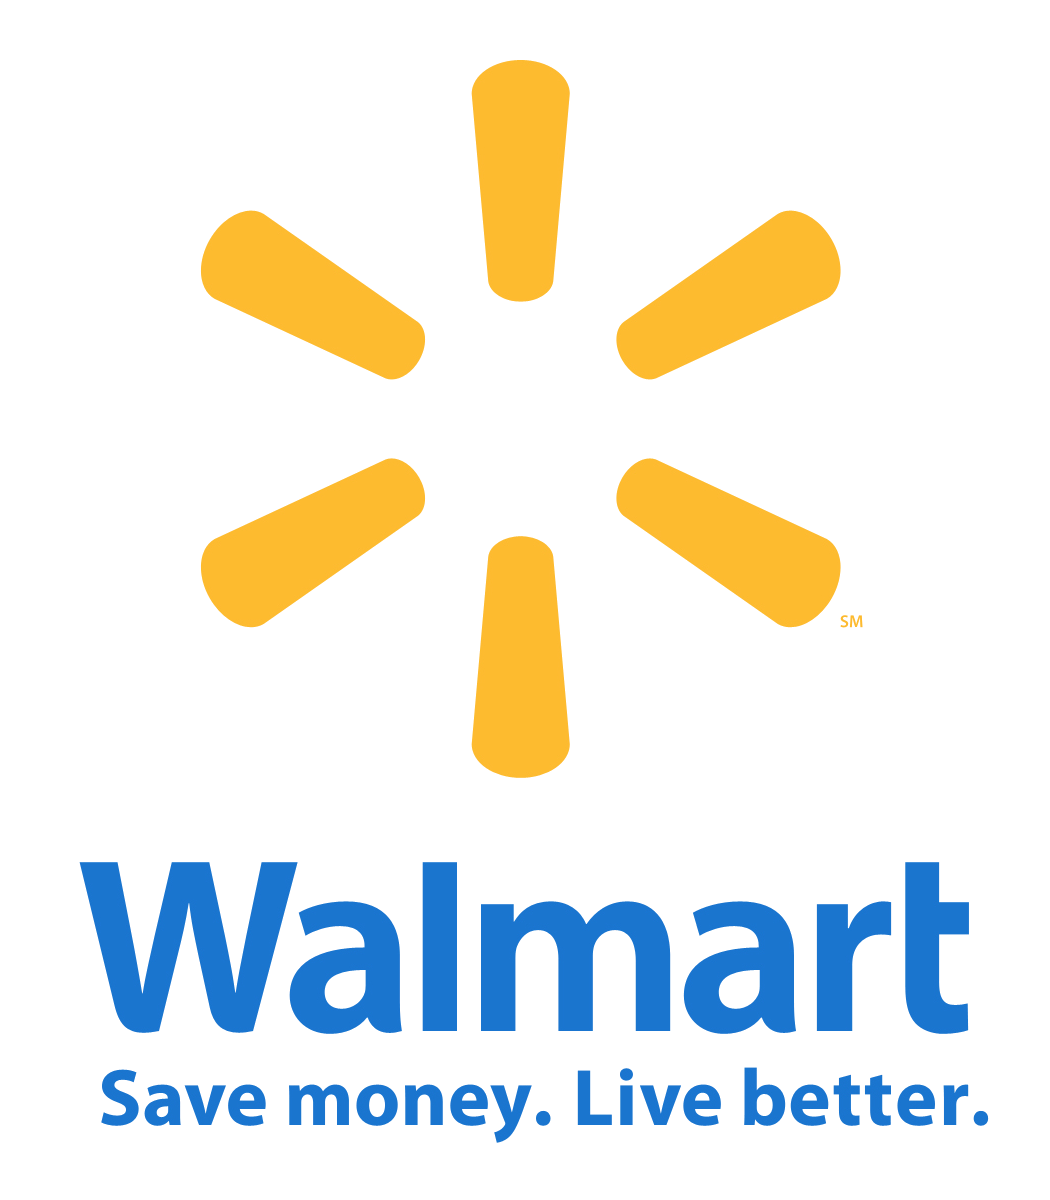 Walmart clipart money jpg royalty free stock Walmart Vertical Logo PNG Image - PurePNG | Free transparent CC0 PNG ... jpg royalty free stock